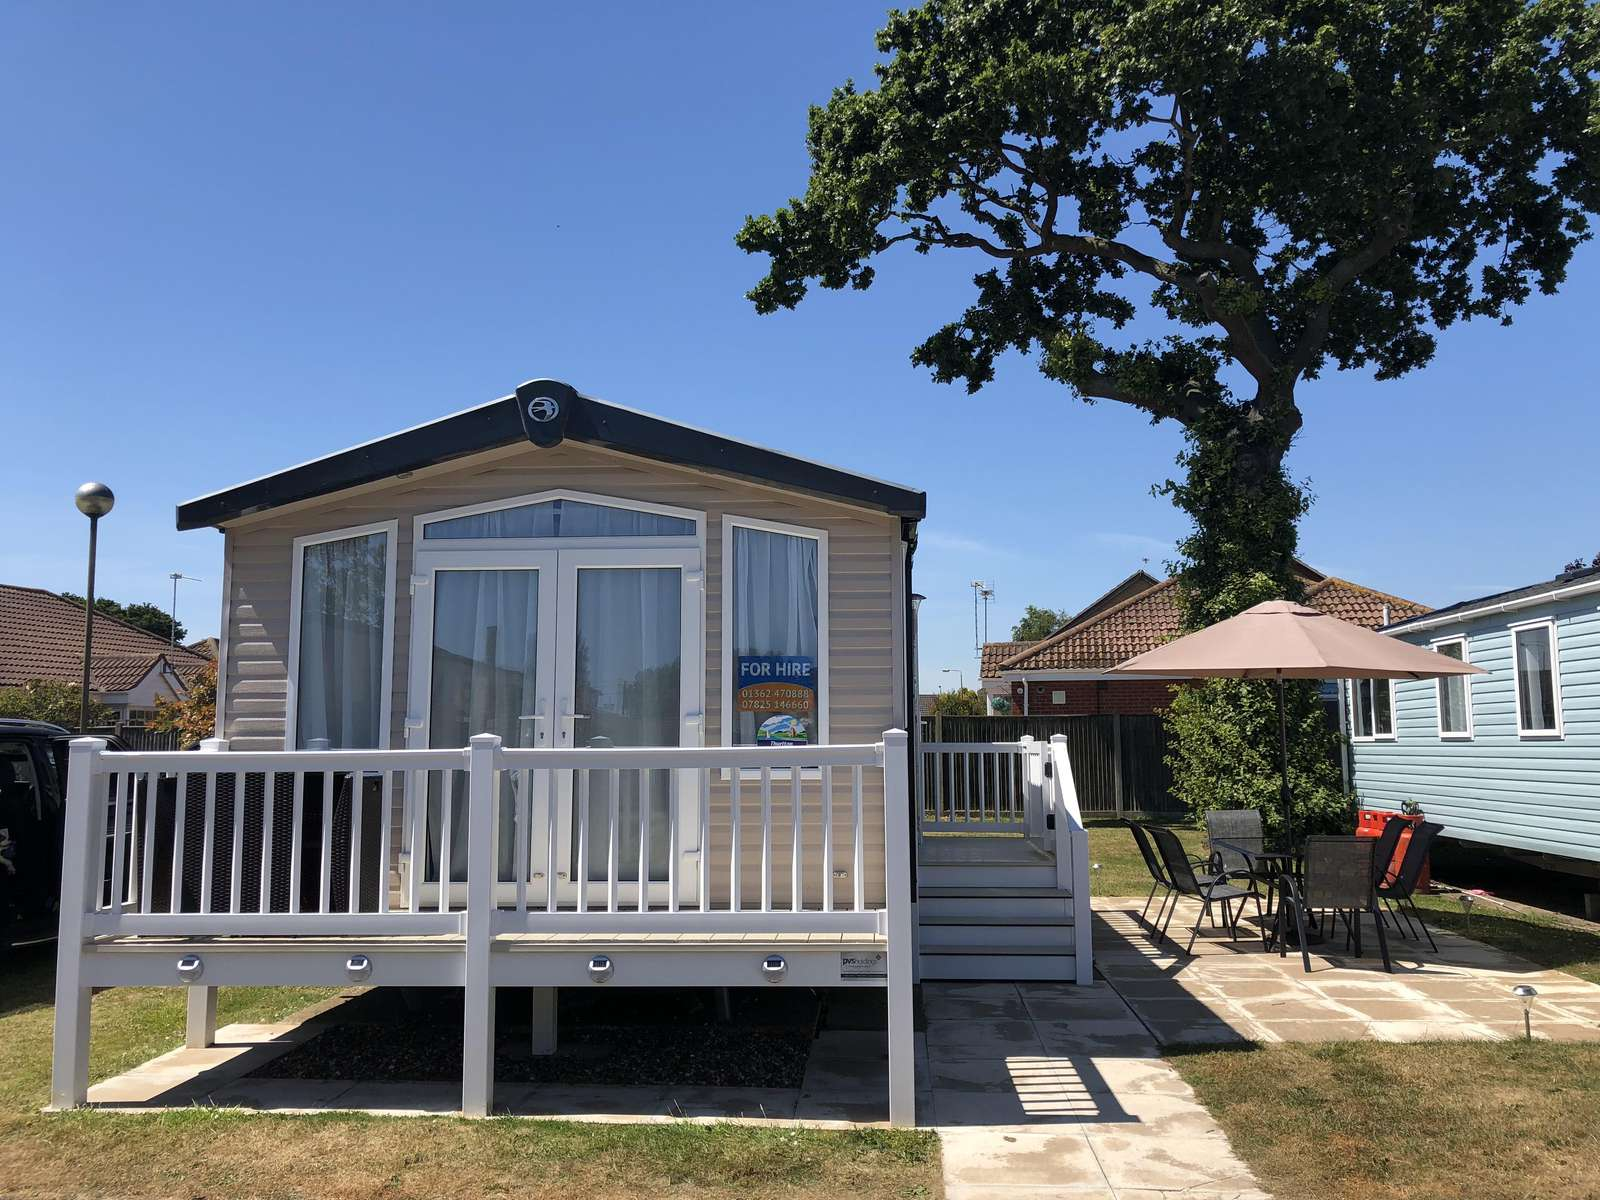 Caravan for hire with decking at Hopton Holiday Village